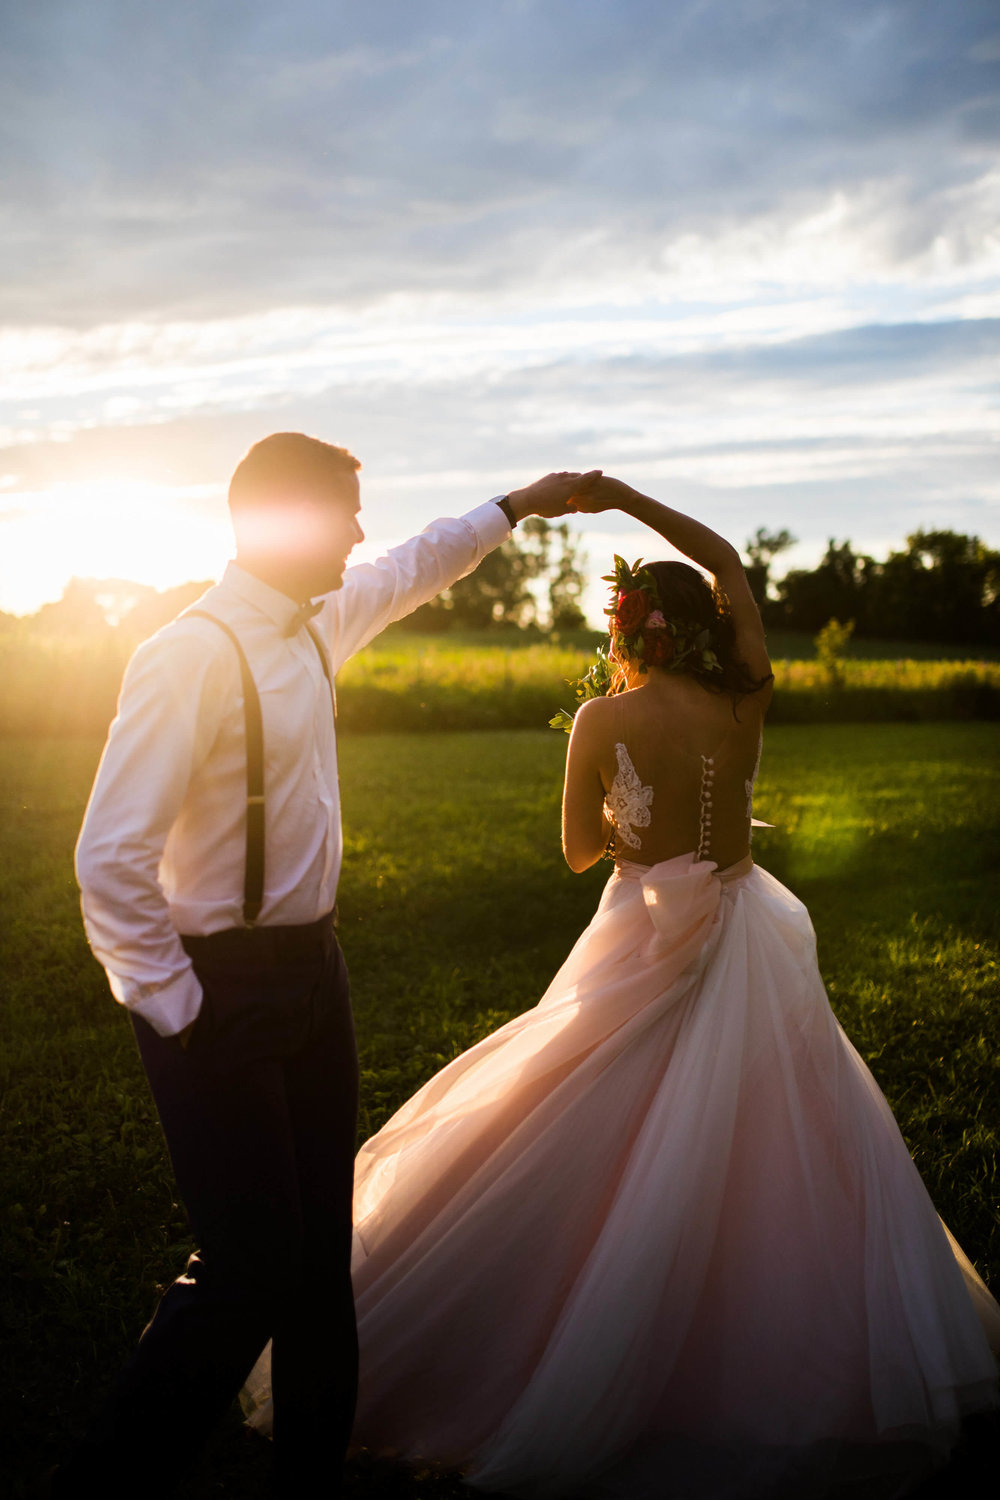 groom twirling bride | pink tulle | sunset | Minnesota wedding photographer Studio KH wedding dress details | wedding blog | Sixpence Events 70 Ways to Photograph Your Wedding Dress.jpg